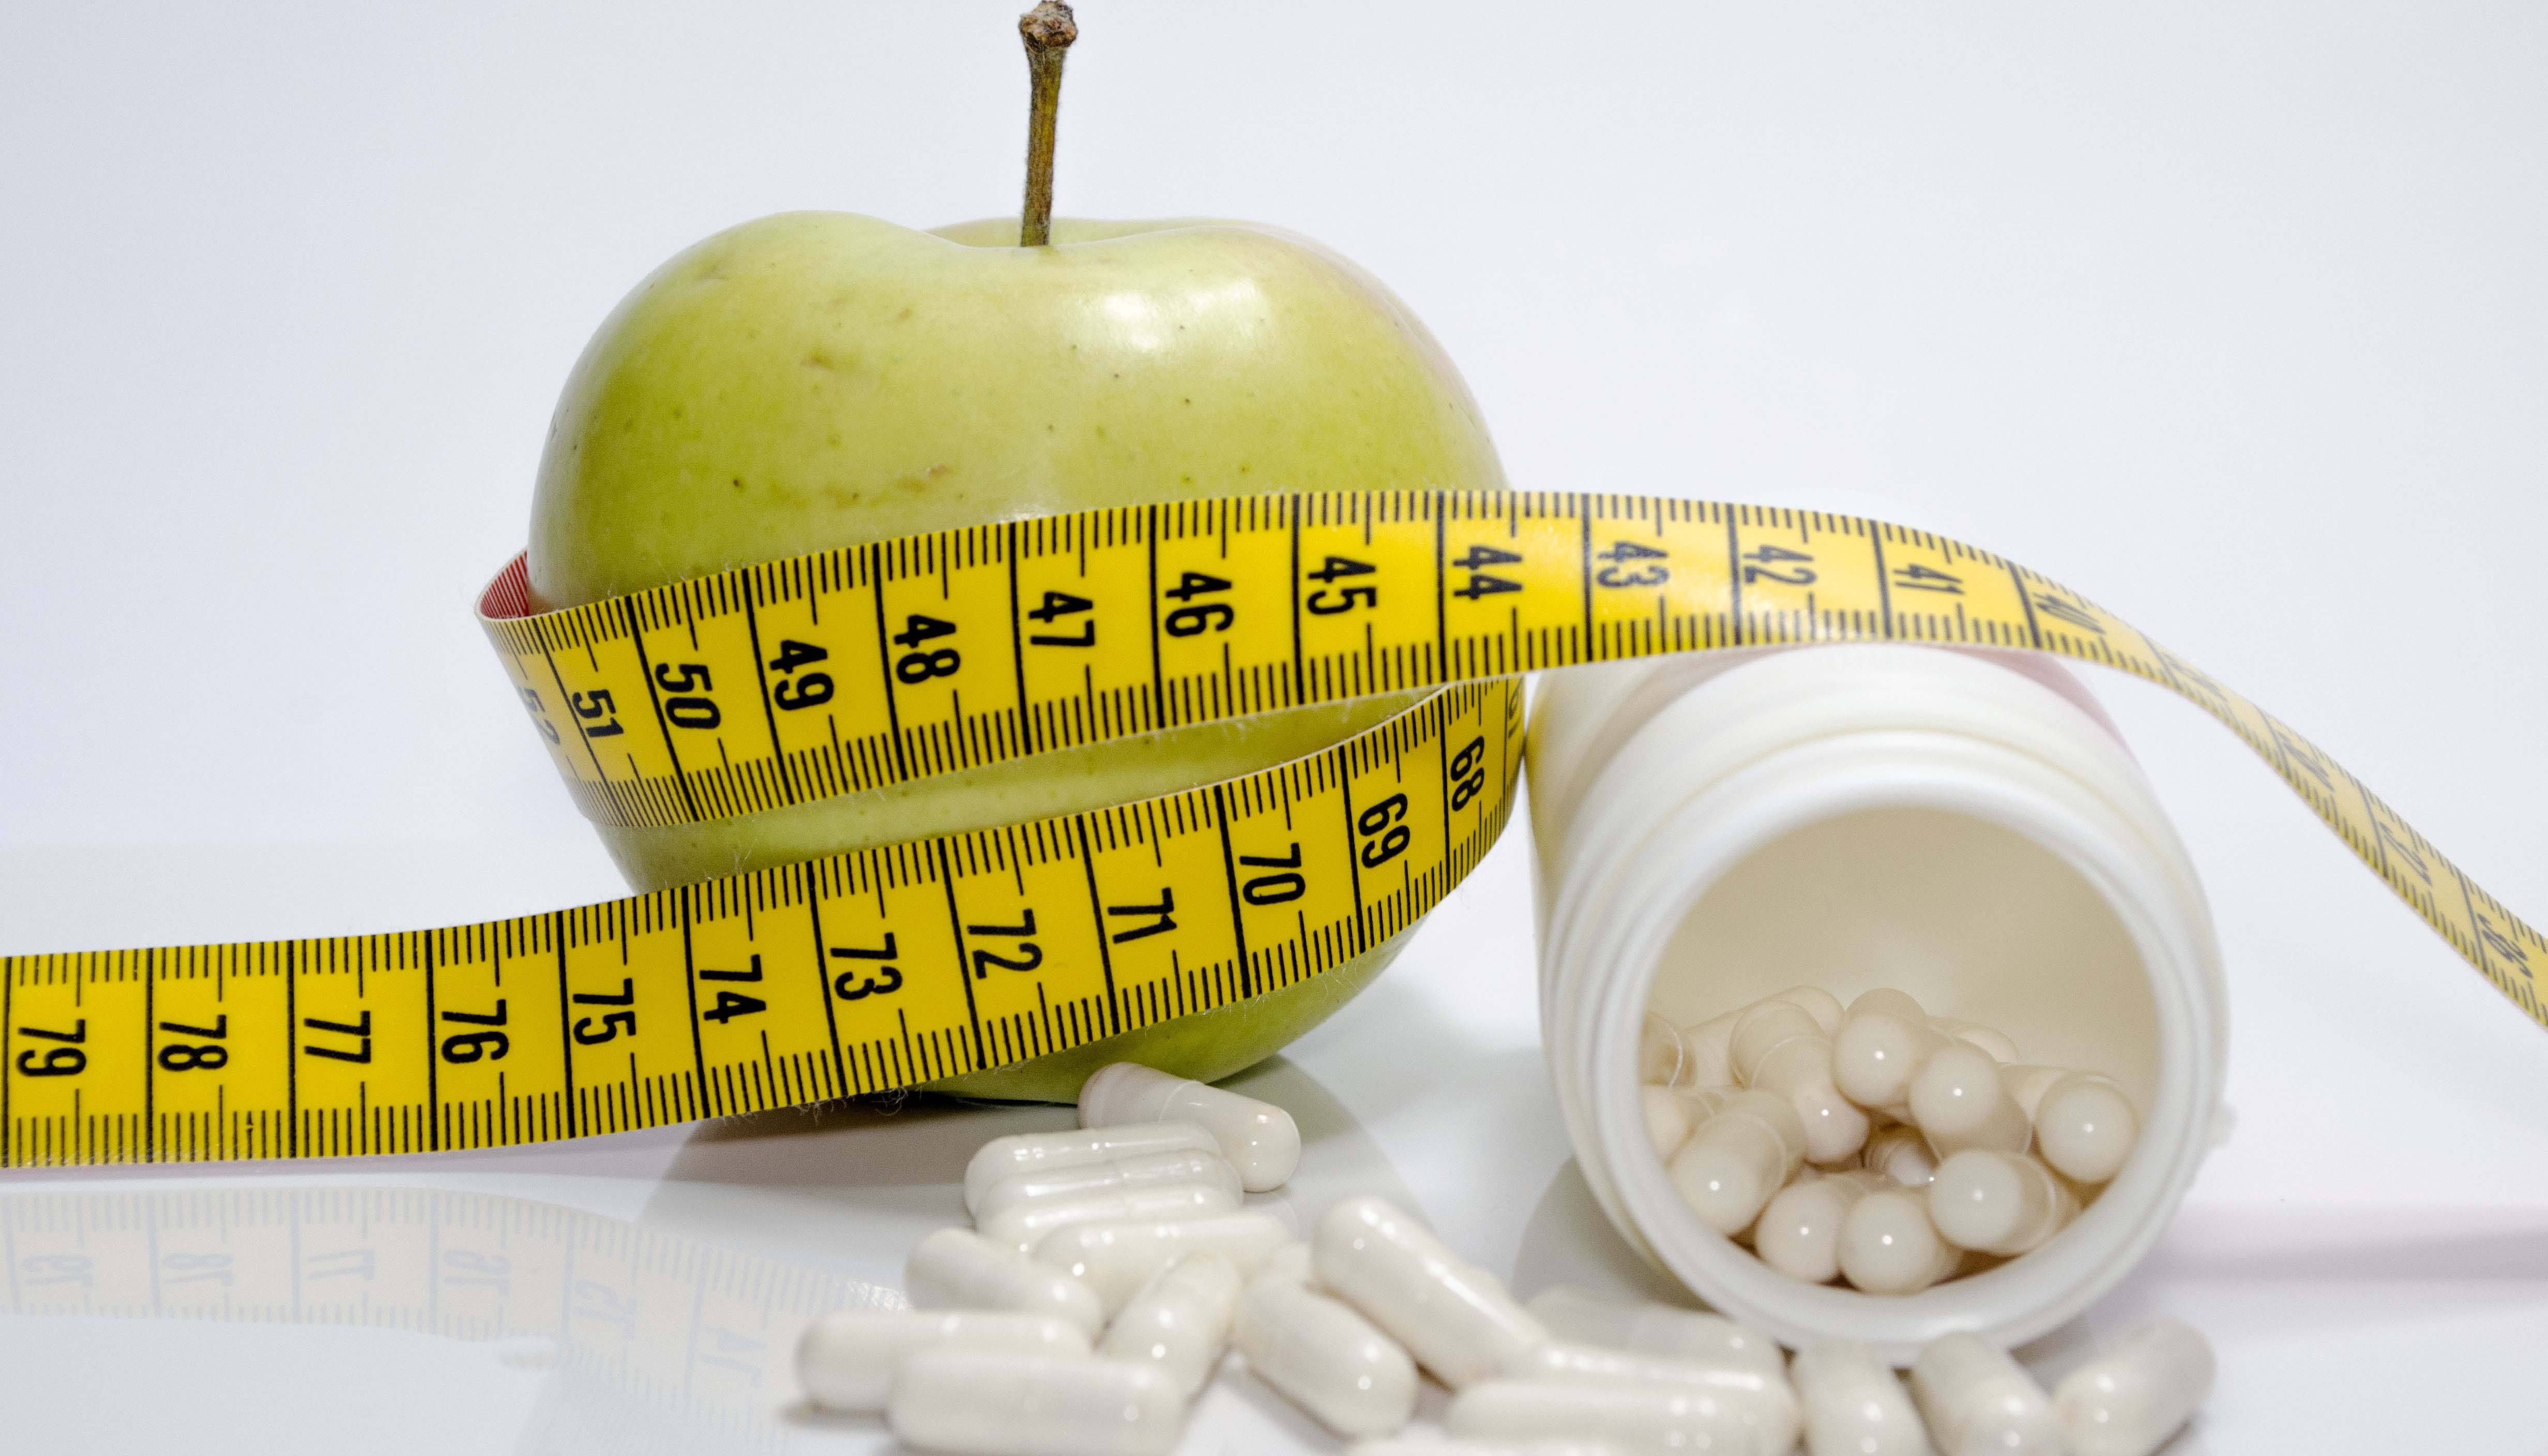 Generic medication, apple, and measuring tape